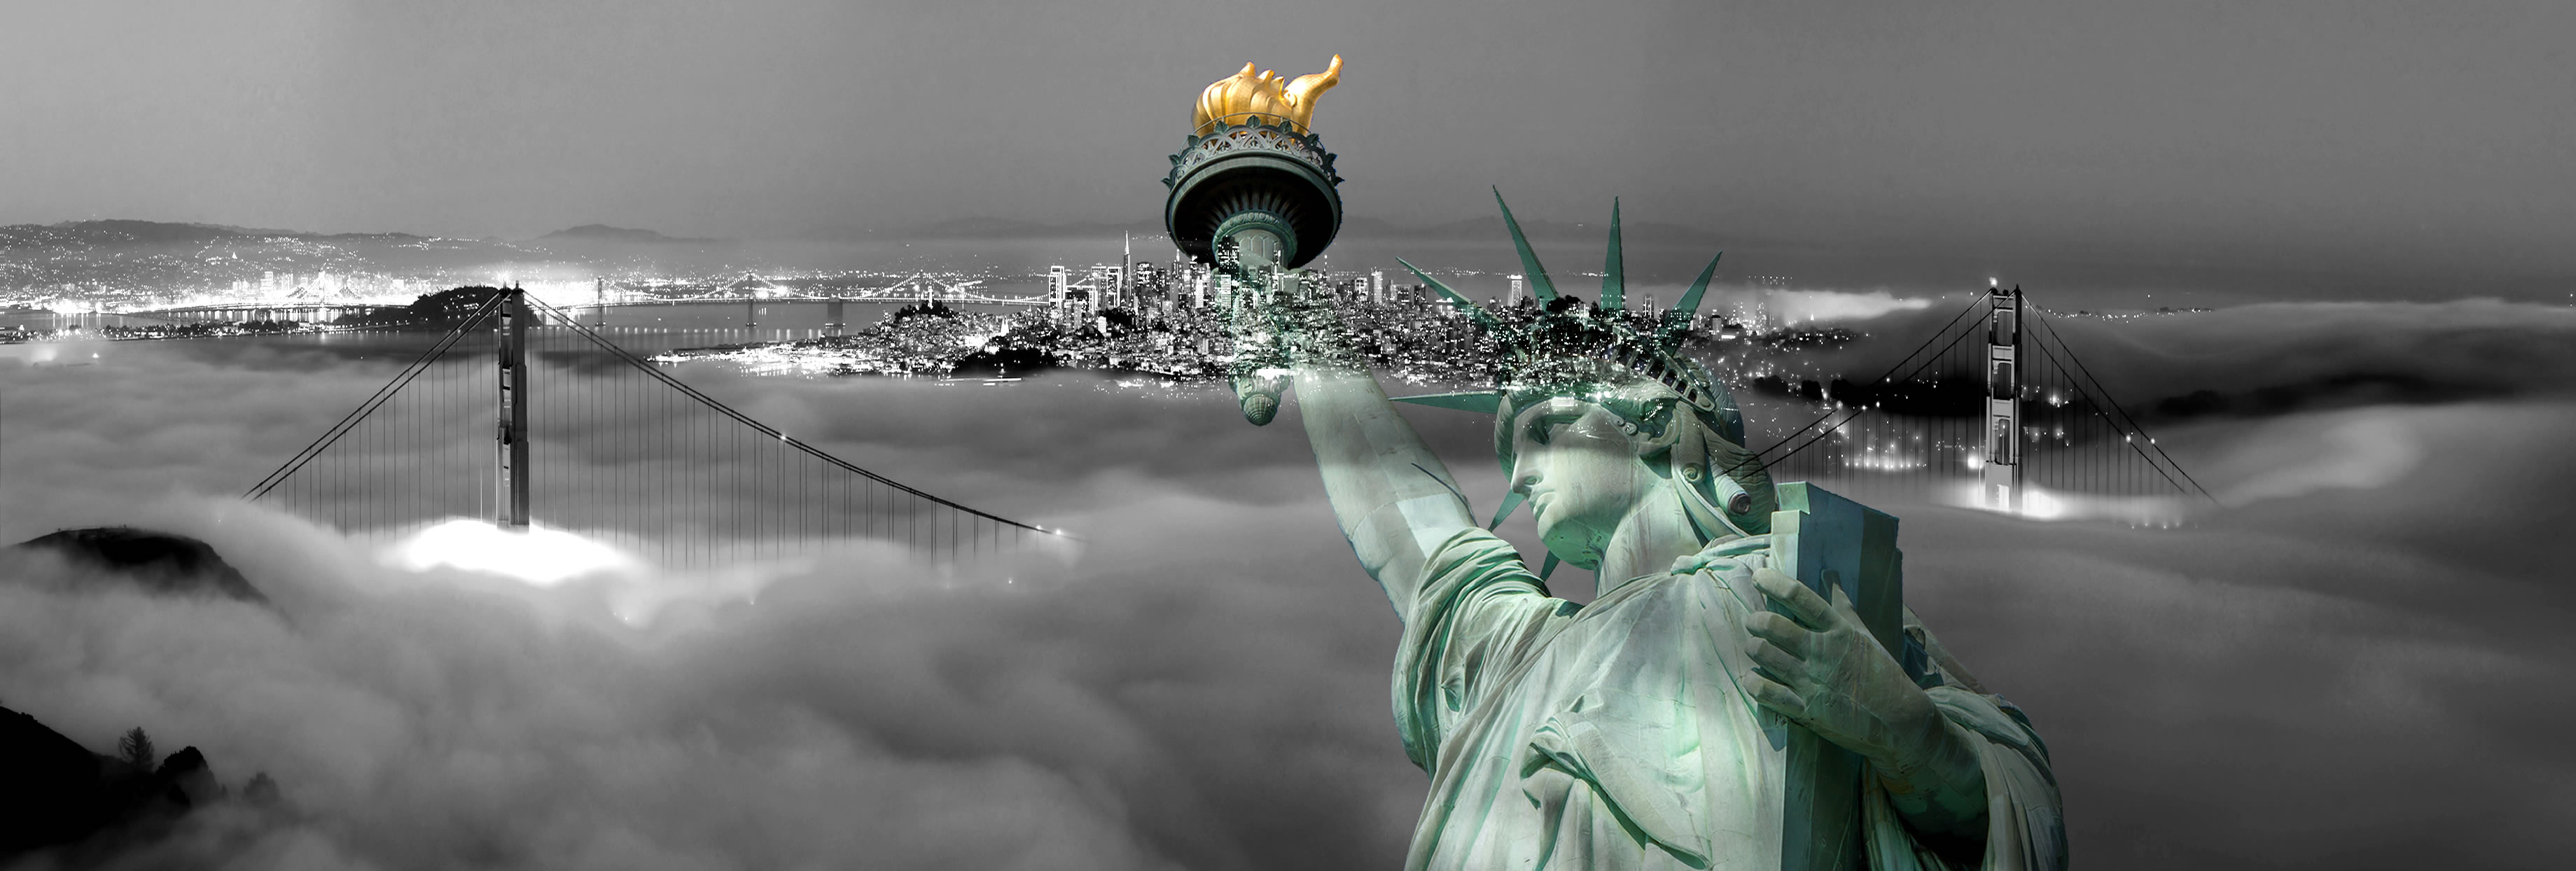 san francisco bw with statue of liberty color 2